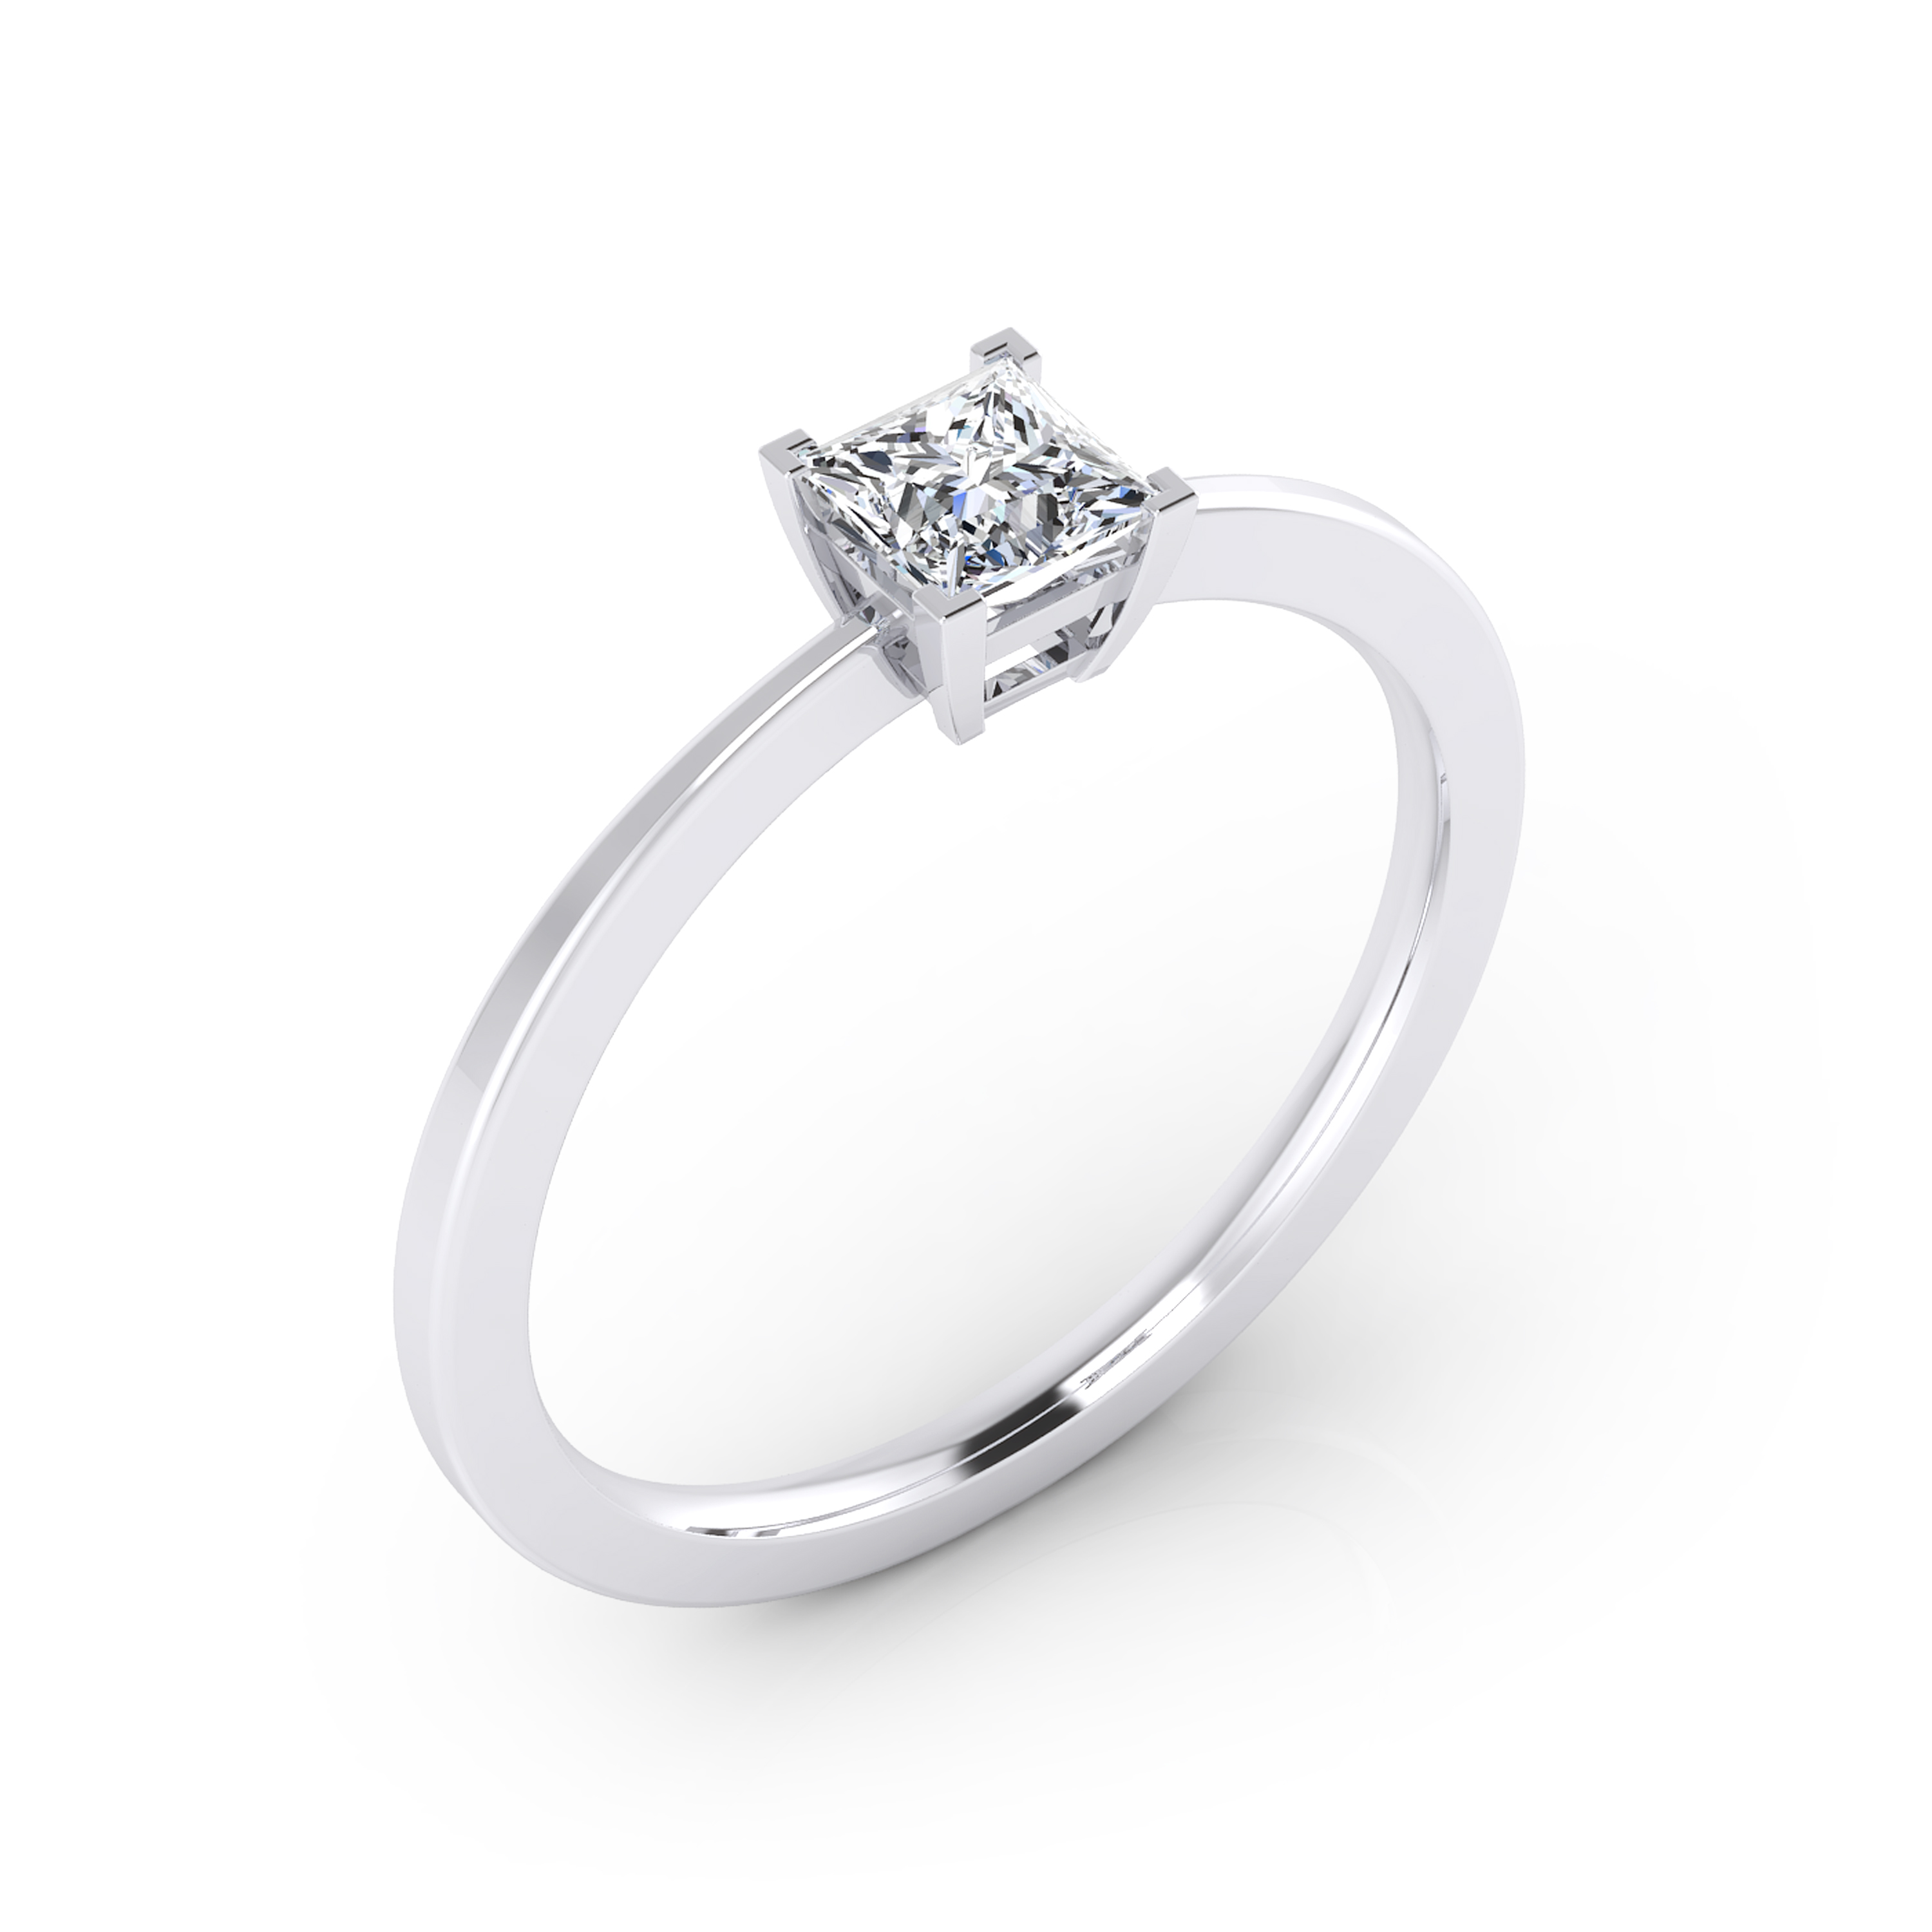 Solitaire engagement ring, 18K white gold, with princess-cut central diamond